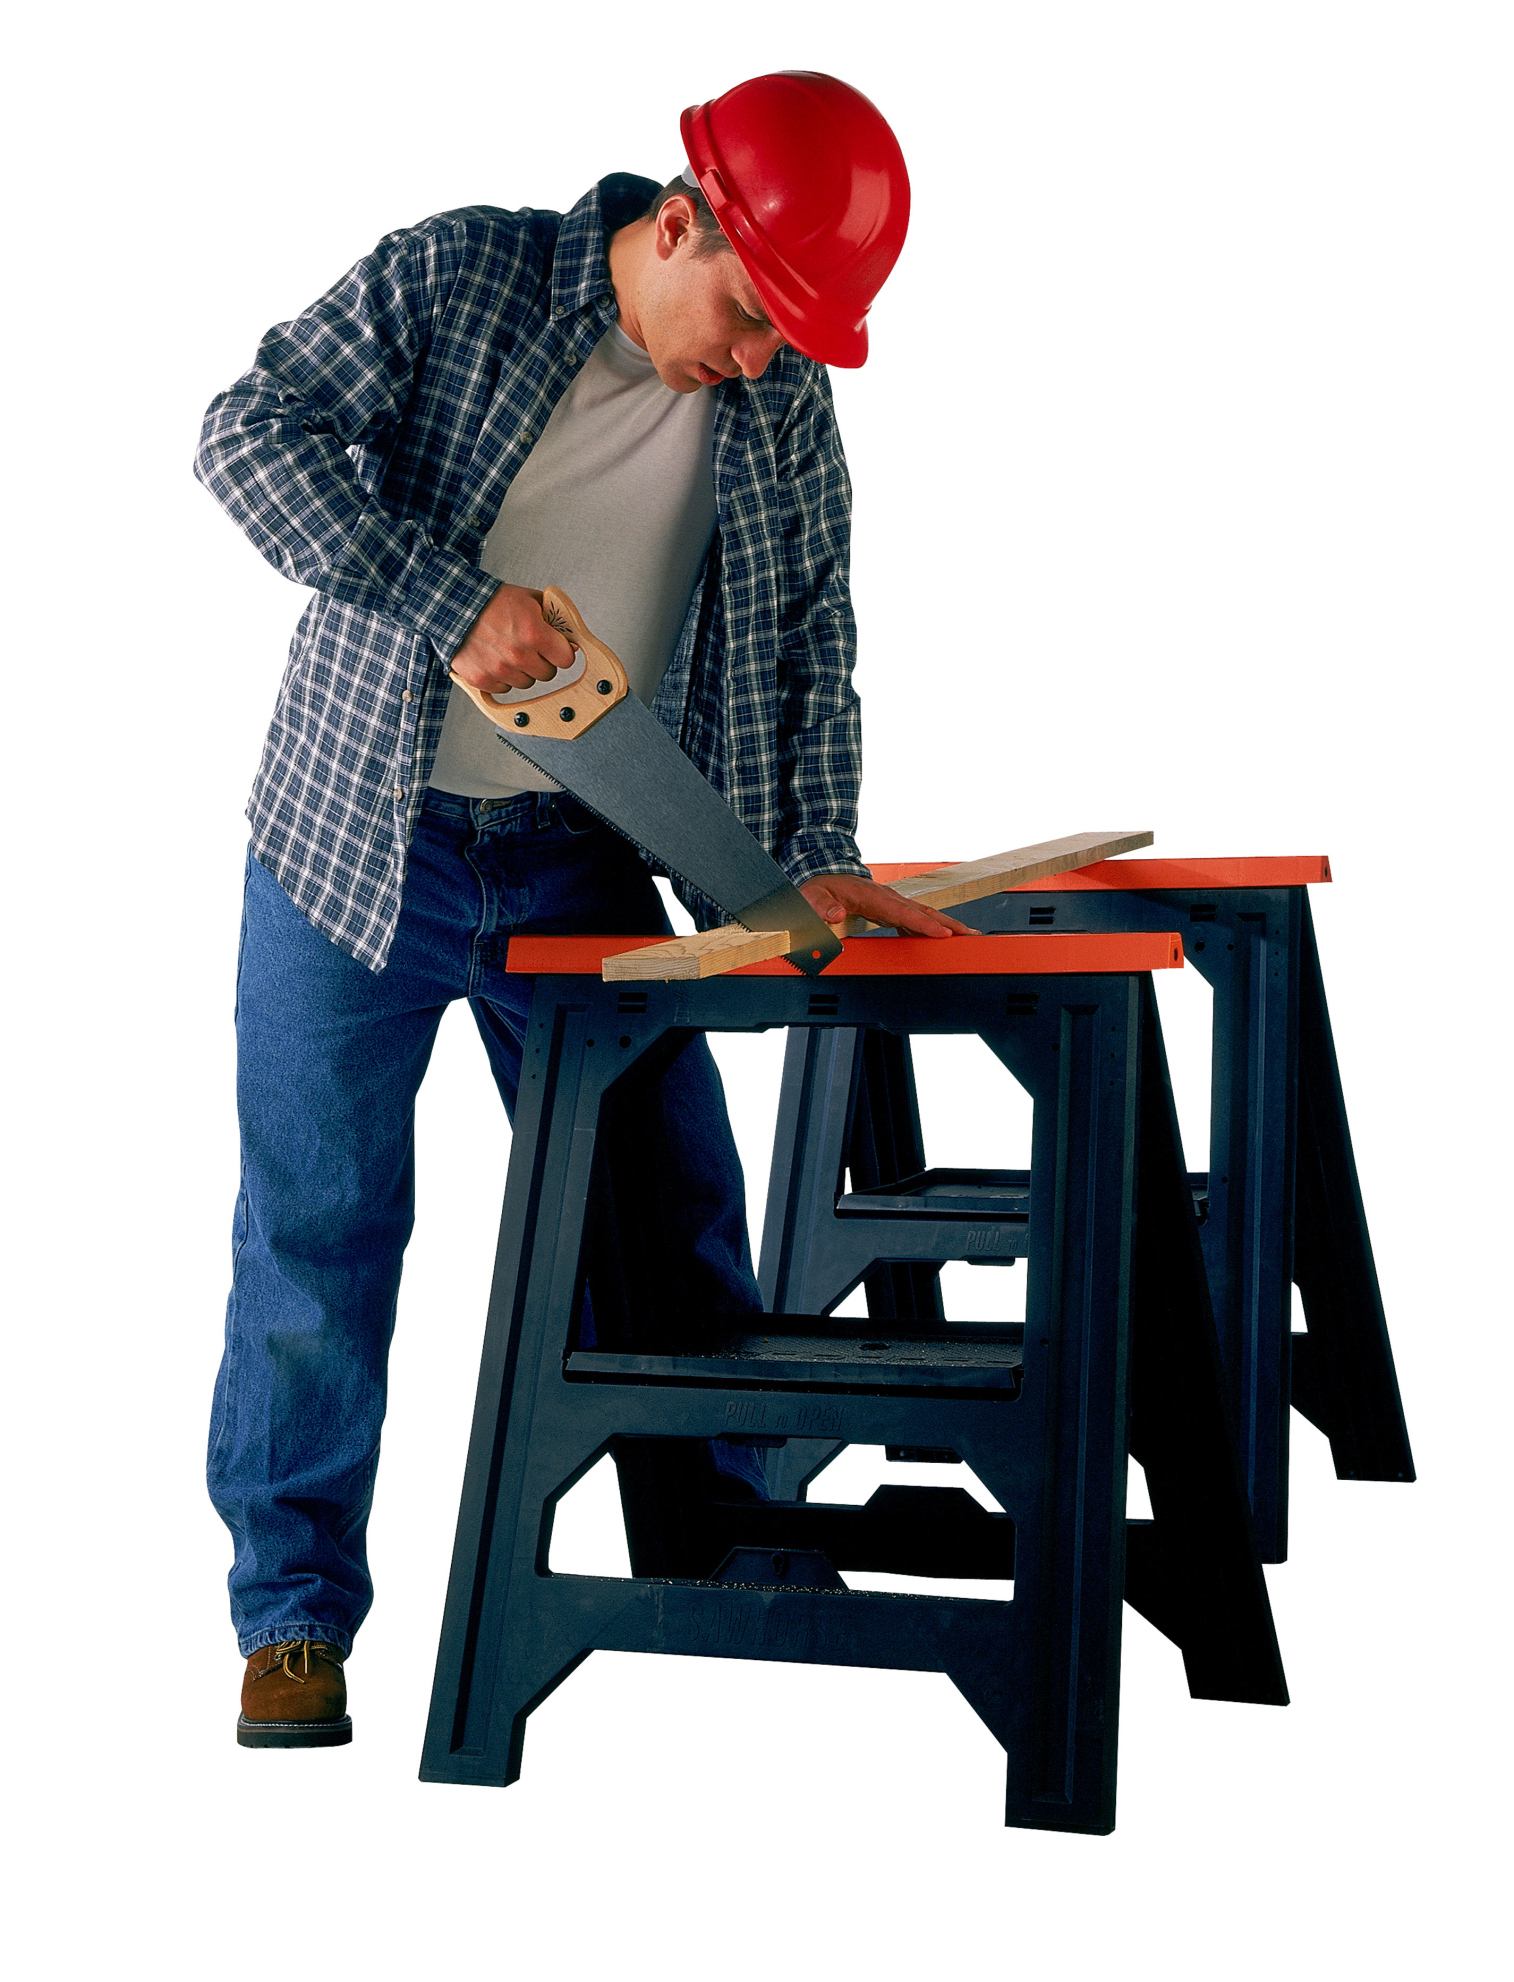 Florida Licensing Requirements for Handyman Services | Bizfluent